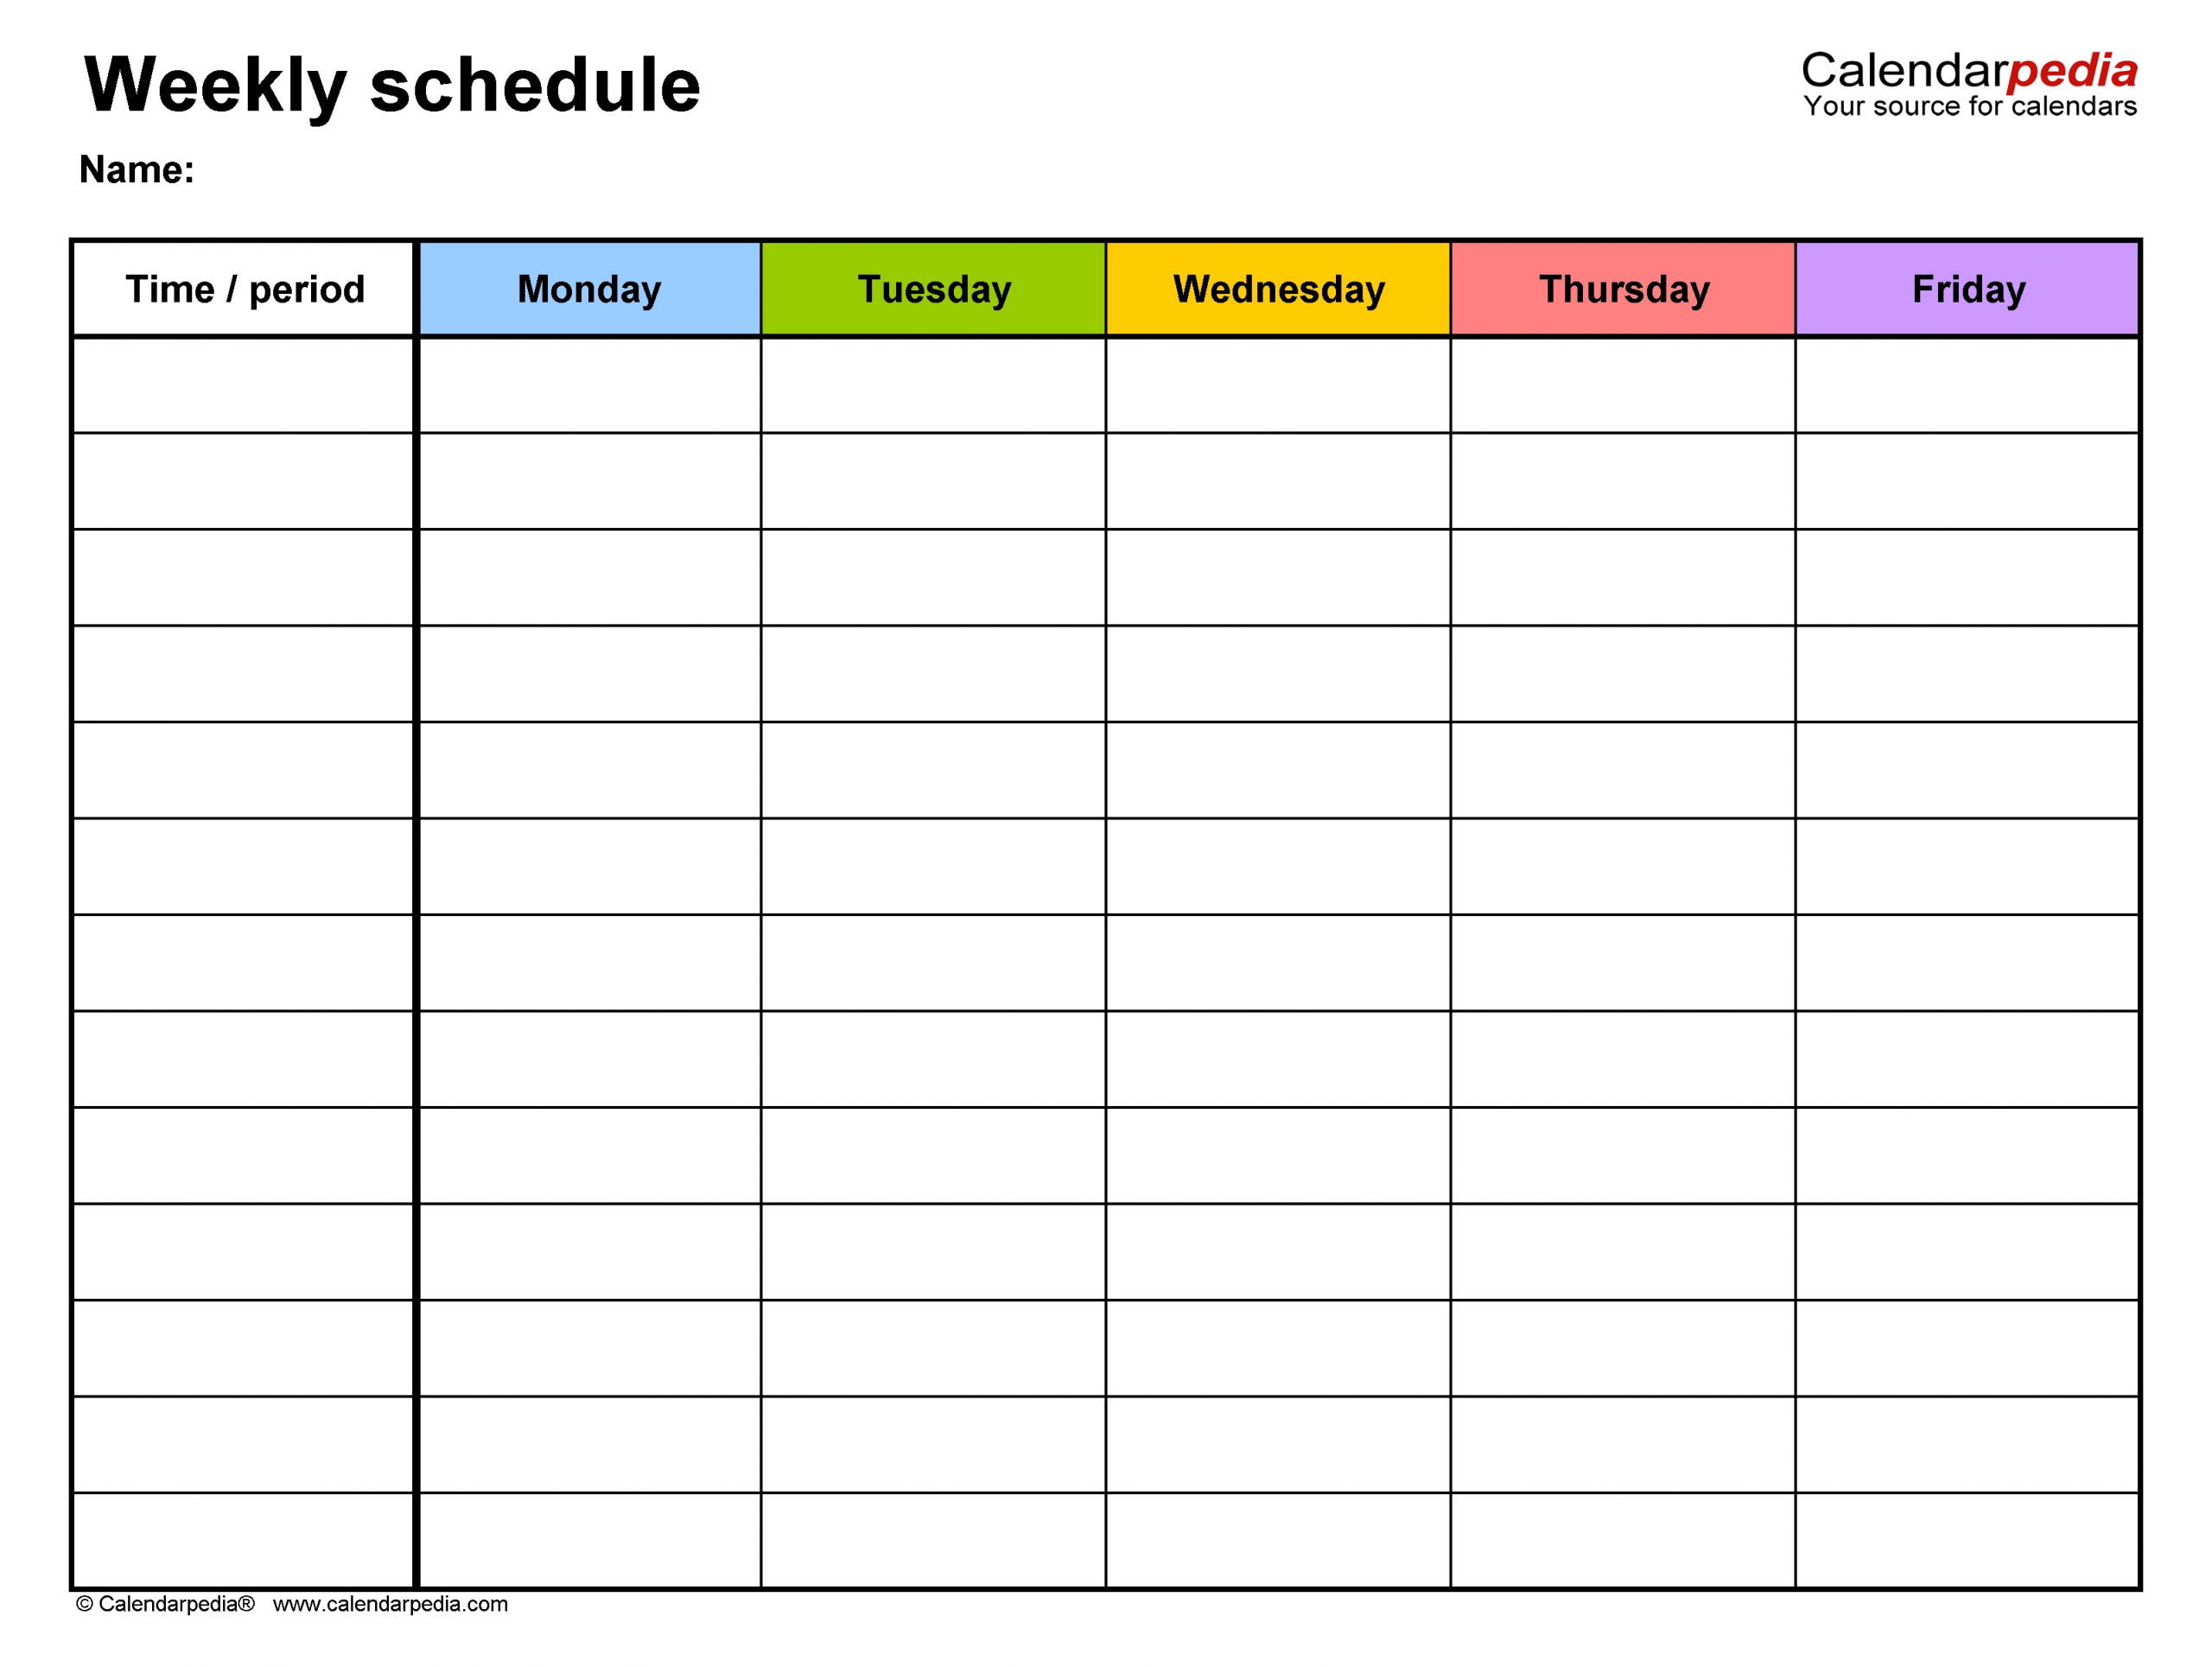 Catch How To Make A Schedule Monday Through Friday 9 - 3